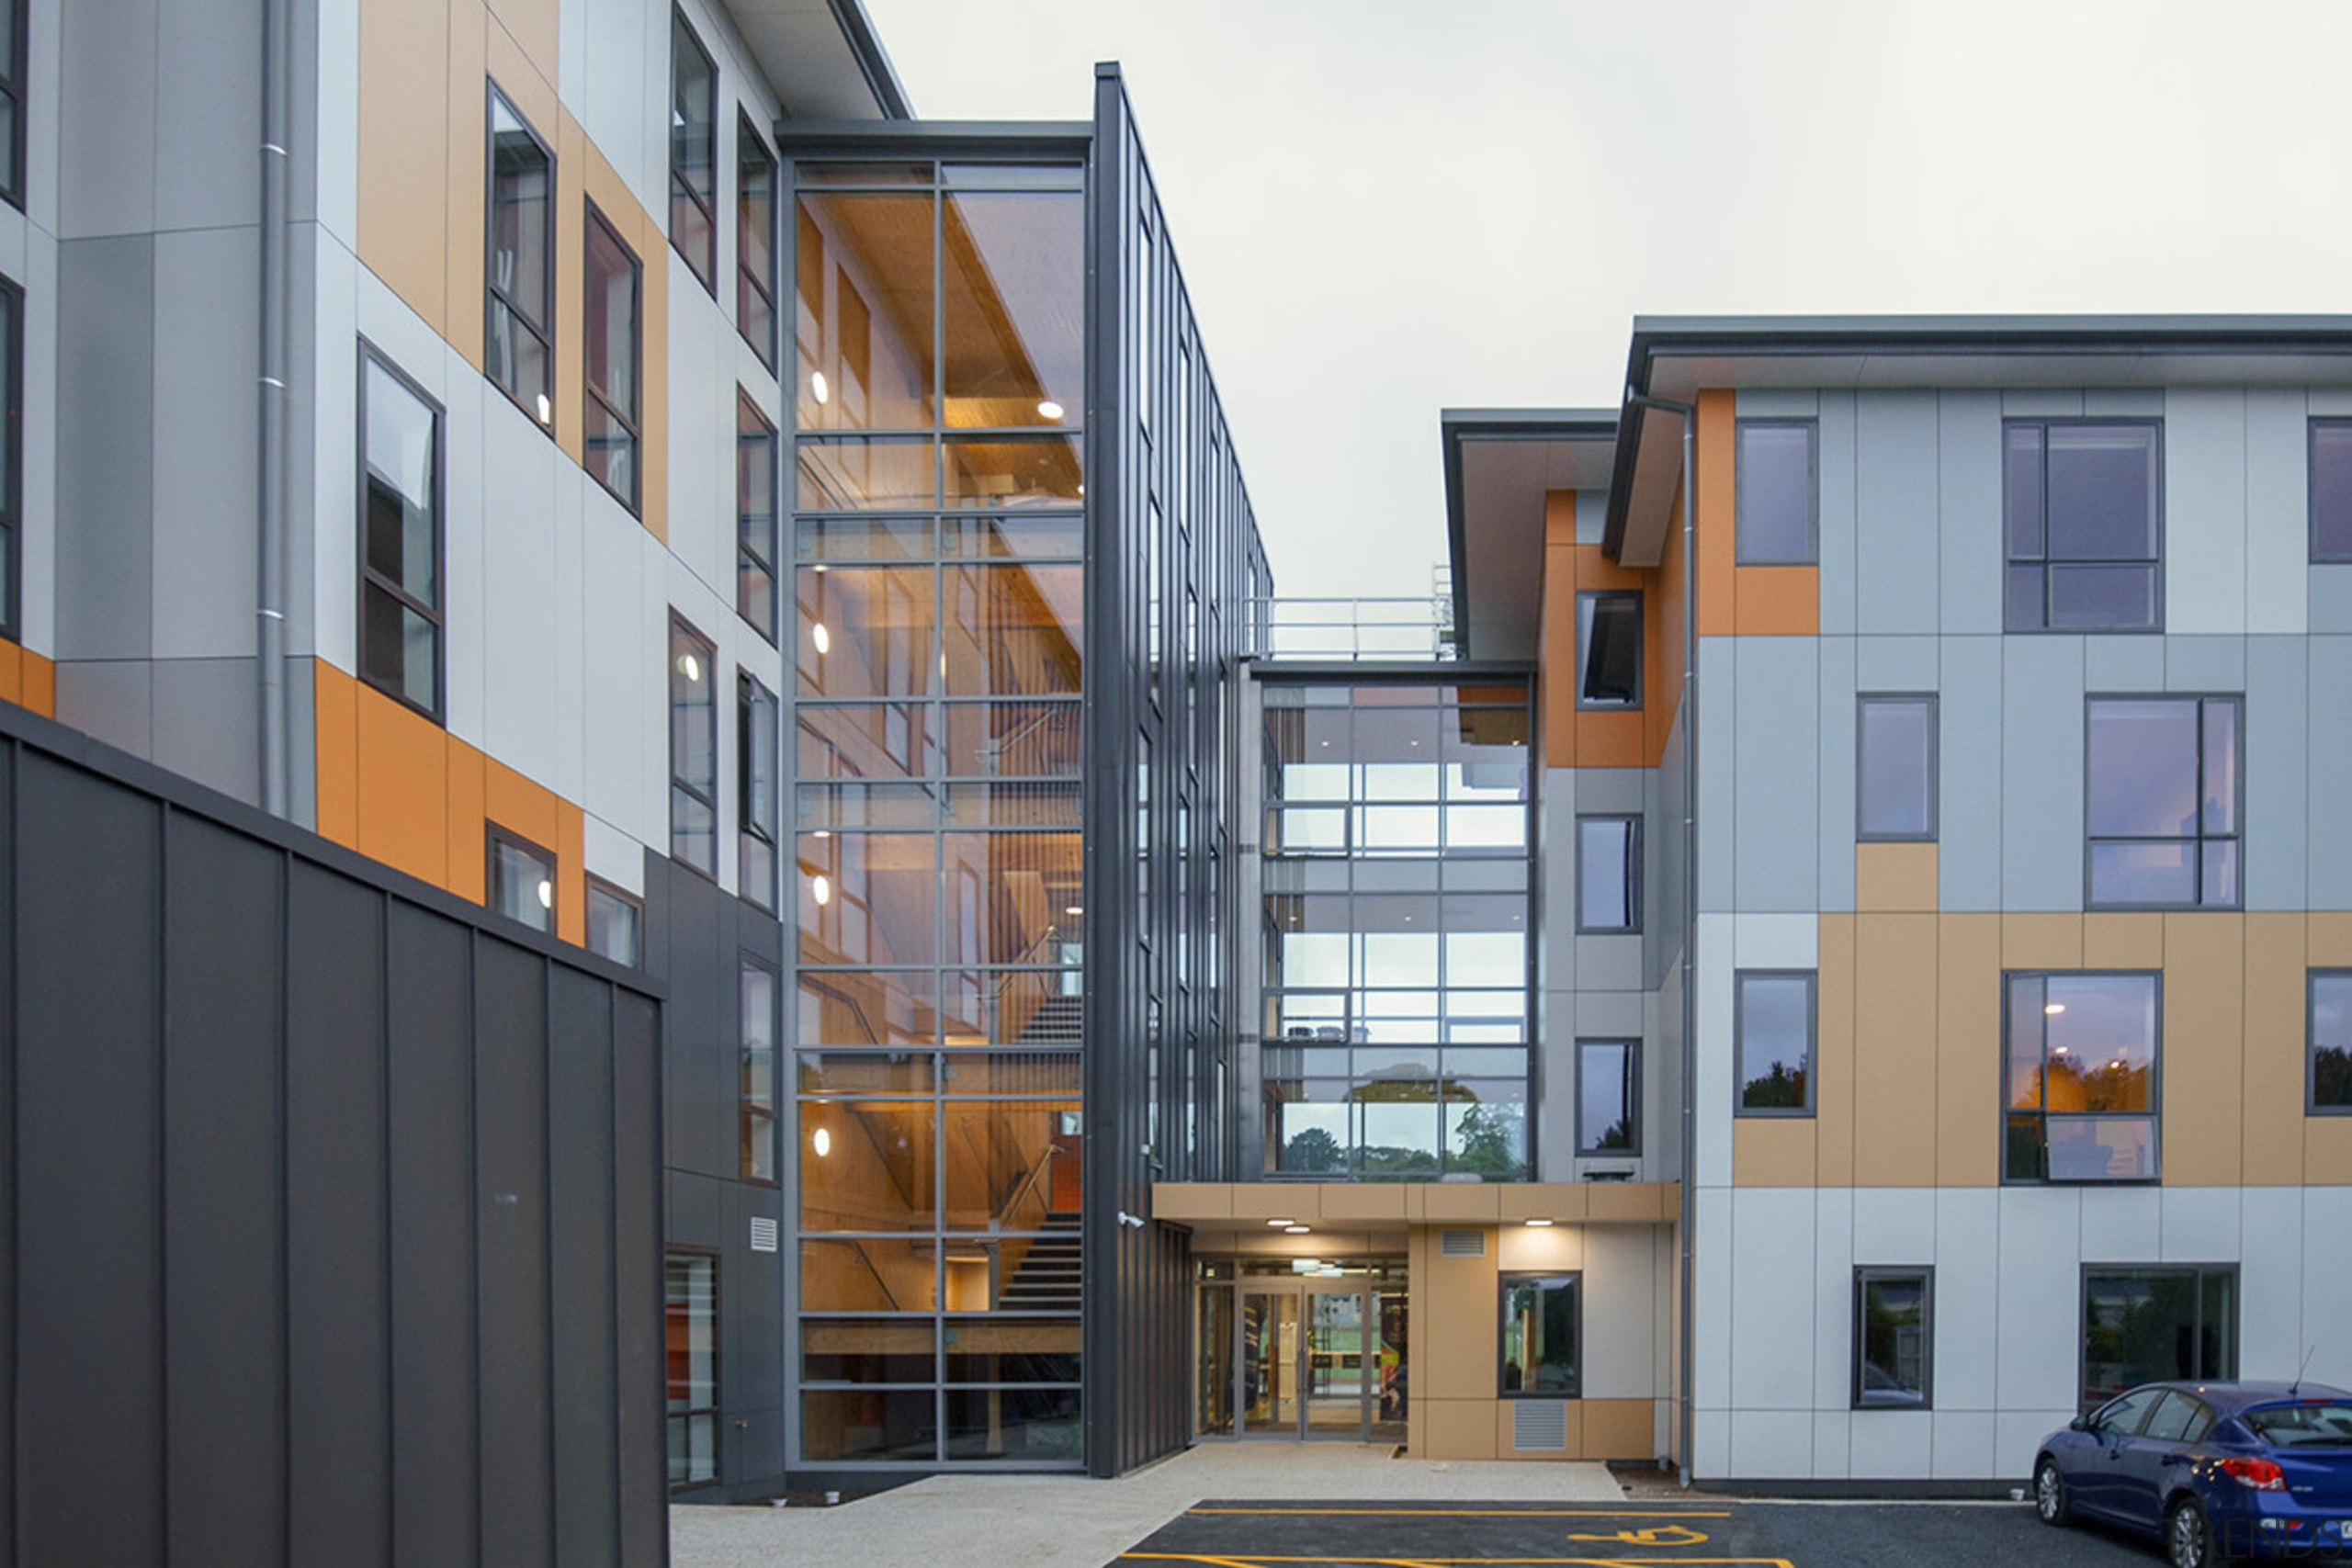 Otago Polytechnic Student Village includes a light-filled glass apartment, architecture, building, commercial building, condominium, elevation, facade, home, house, mixed use, neighbourhood, real estate, residential area, window, gray